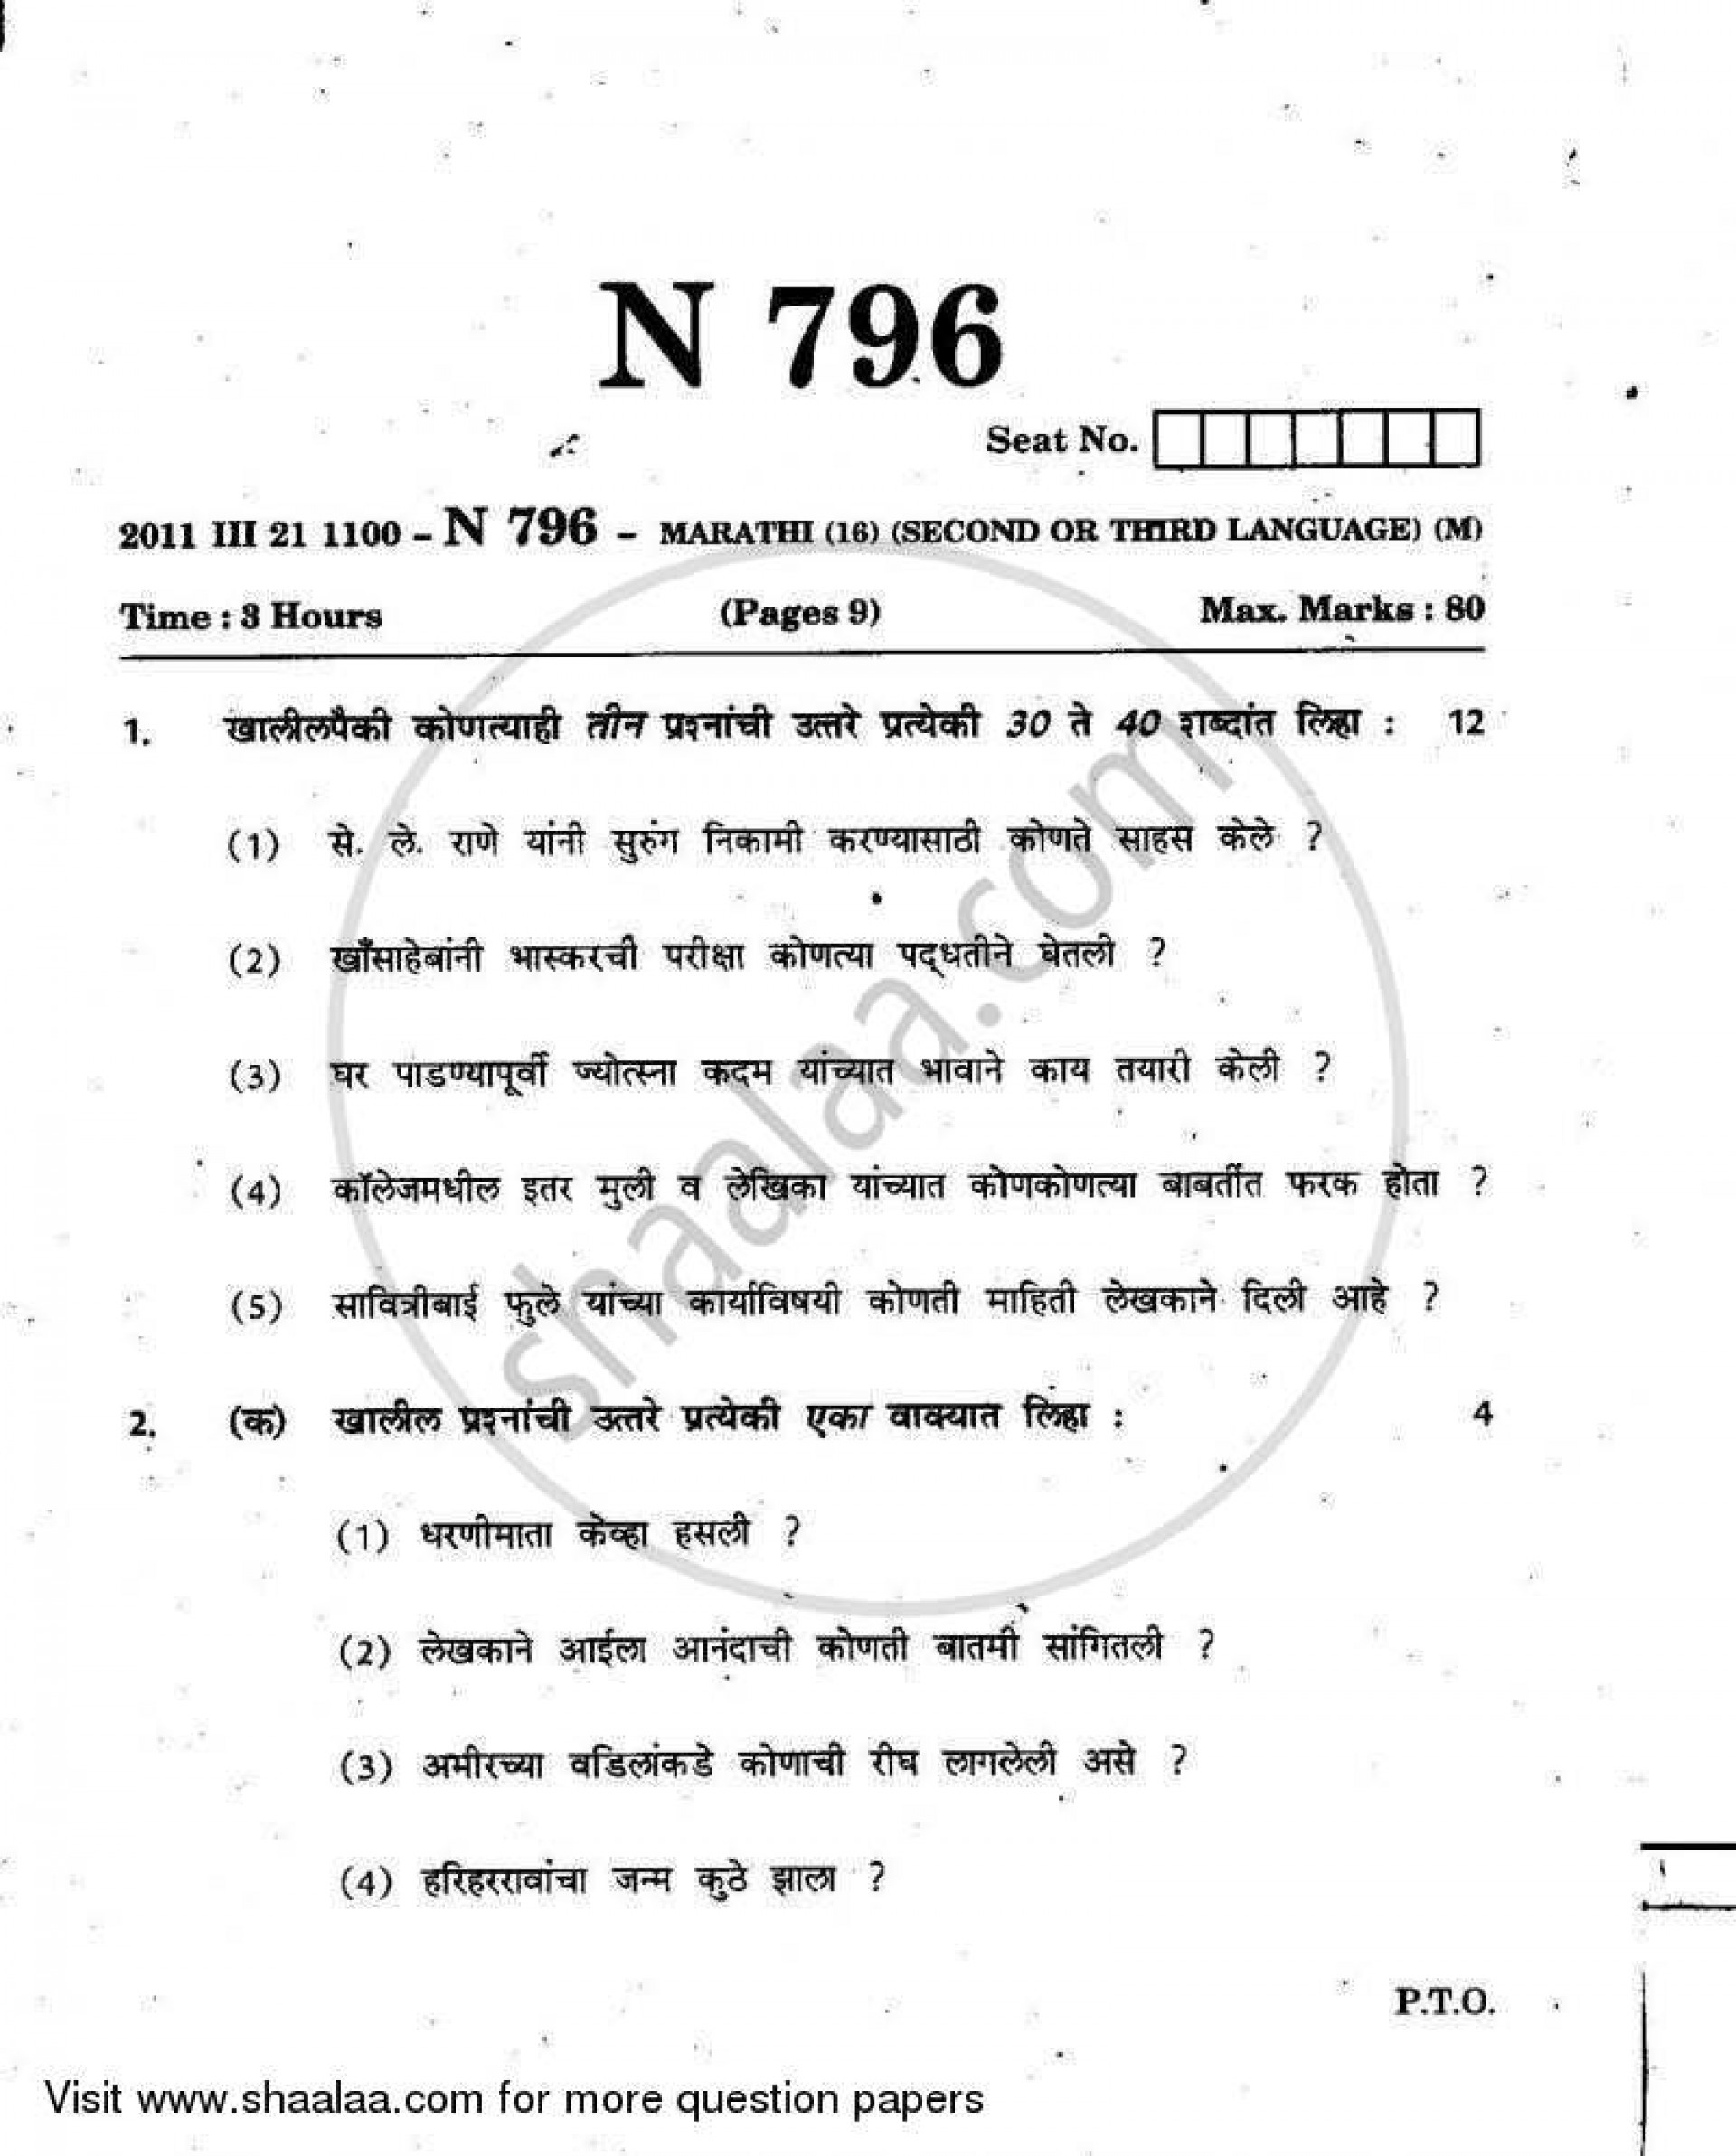 009 Marketing Research Papers Pdf Free Download Paper Maharashtra State Board Ssc Hsc 9th 10th Marathi Exam 2010 2fbed2ae9163948c0855055c181dc6385 Impressive 1920